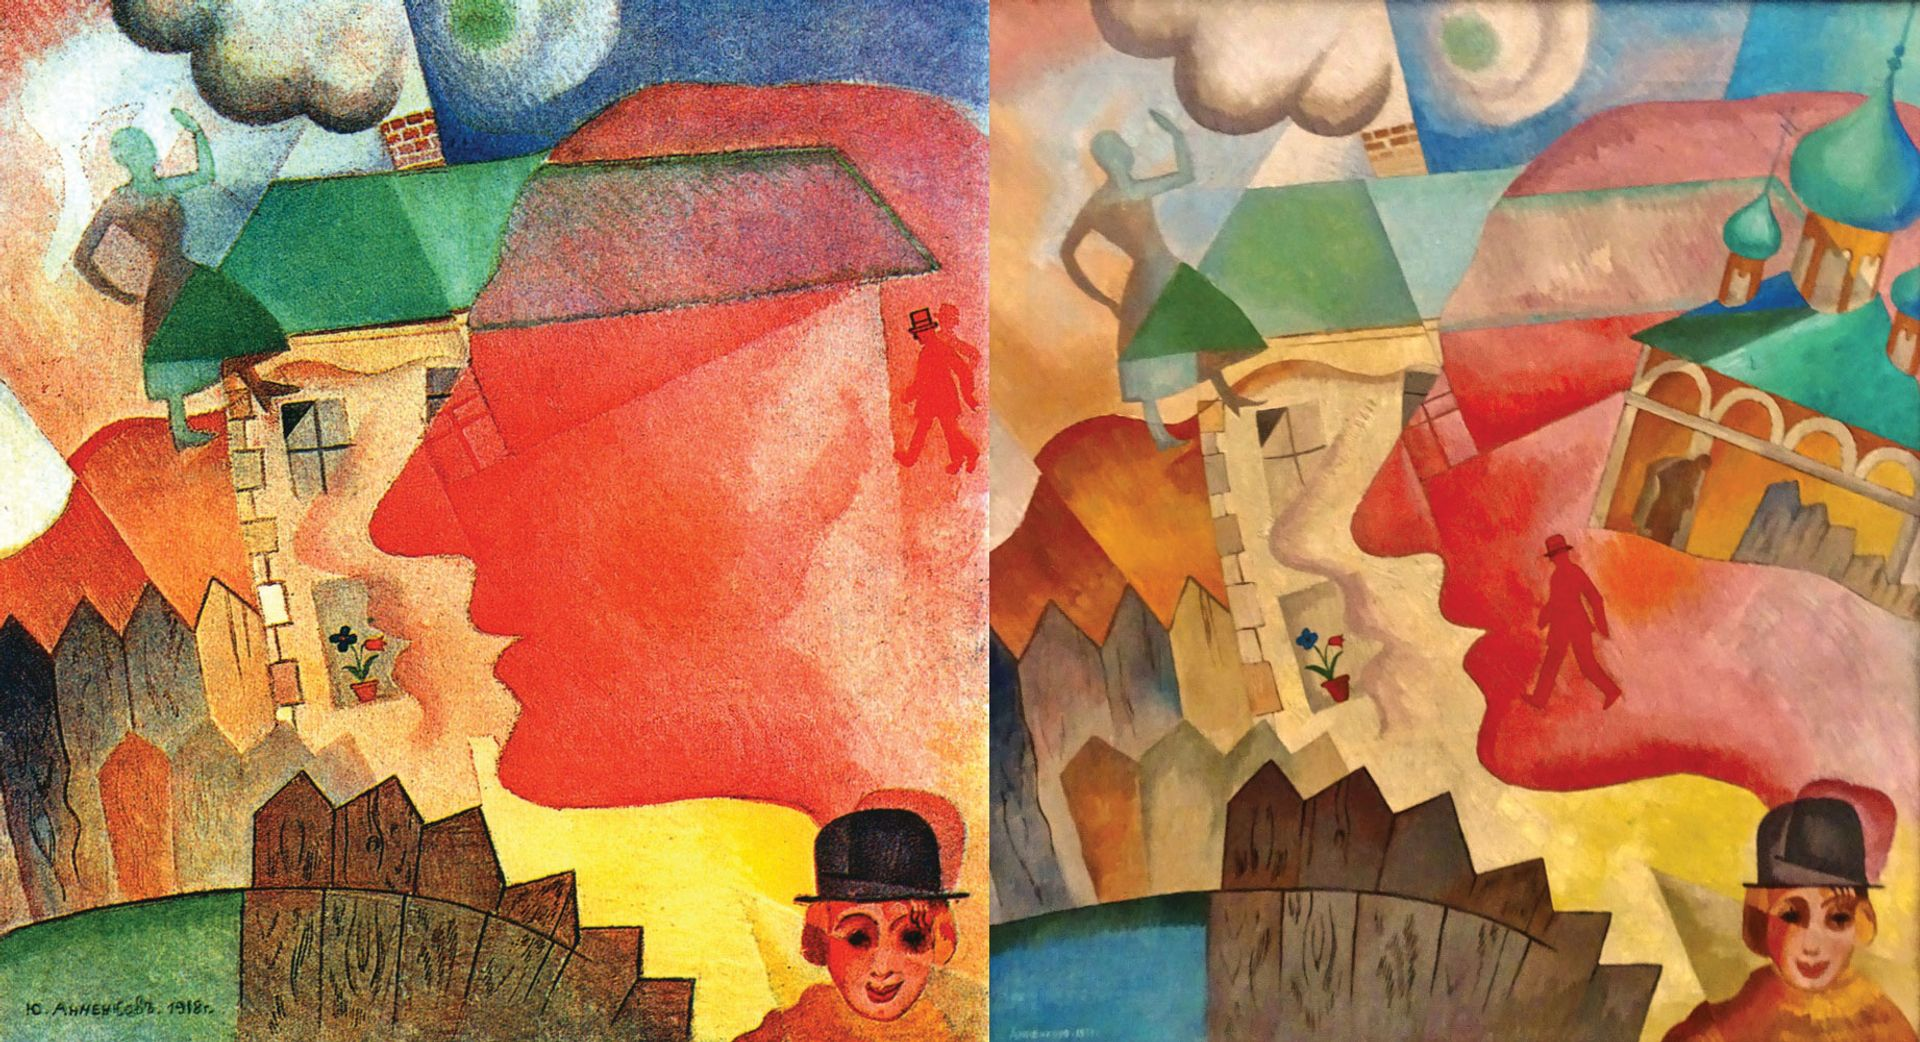 Vladimir Hofmann, the world's leading authority on Yury Annenkov, points out the striking similarity between a fully authenticated Annenkov dated 1918 (left) and a work ascribed to the artist, labelled Synthetic Landscape and dated 1919 Dieleghem Foundation (Synthetic landscape)